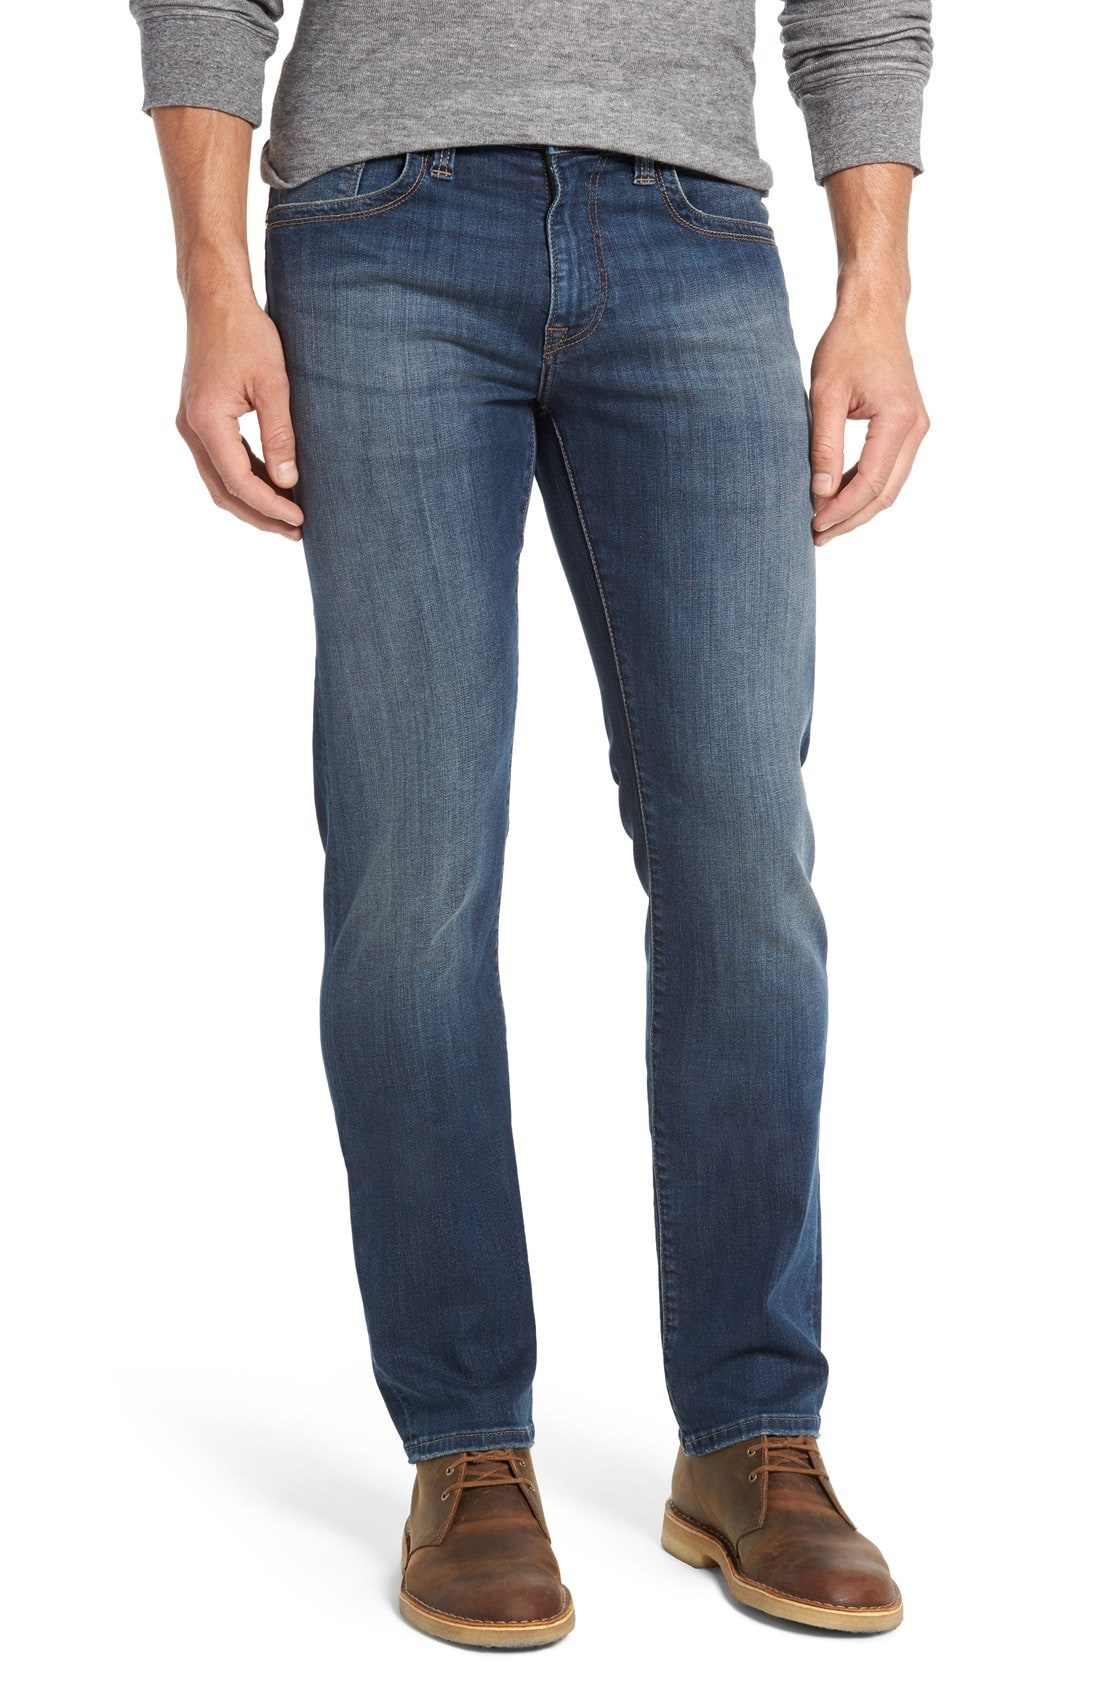 34 Heritage Courage Straight Leg Jeans (Mid Vintage) (Online Only) (Regular & Tall)